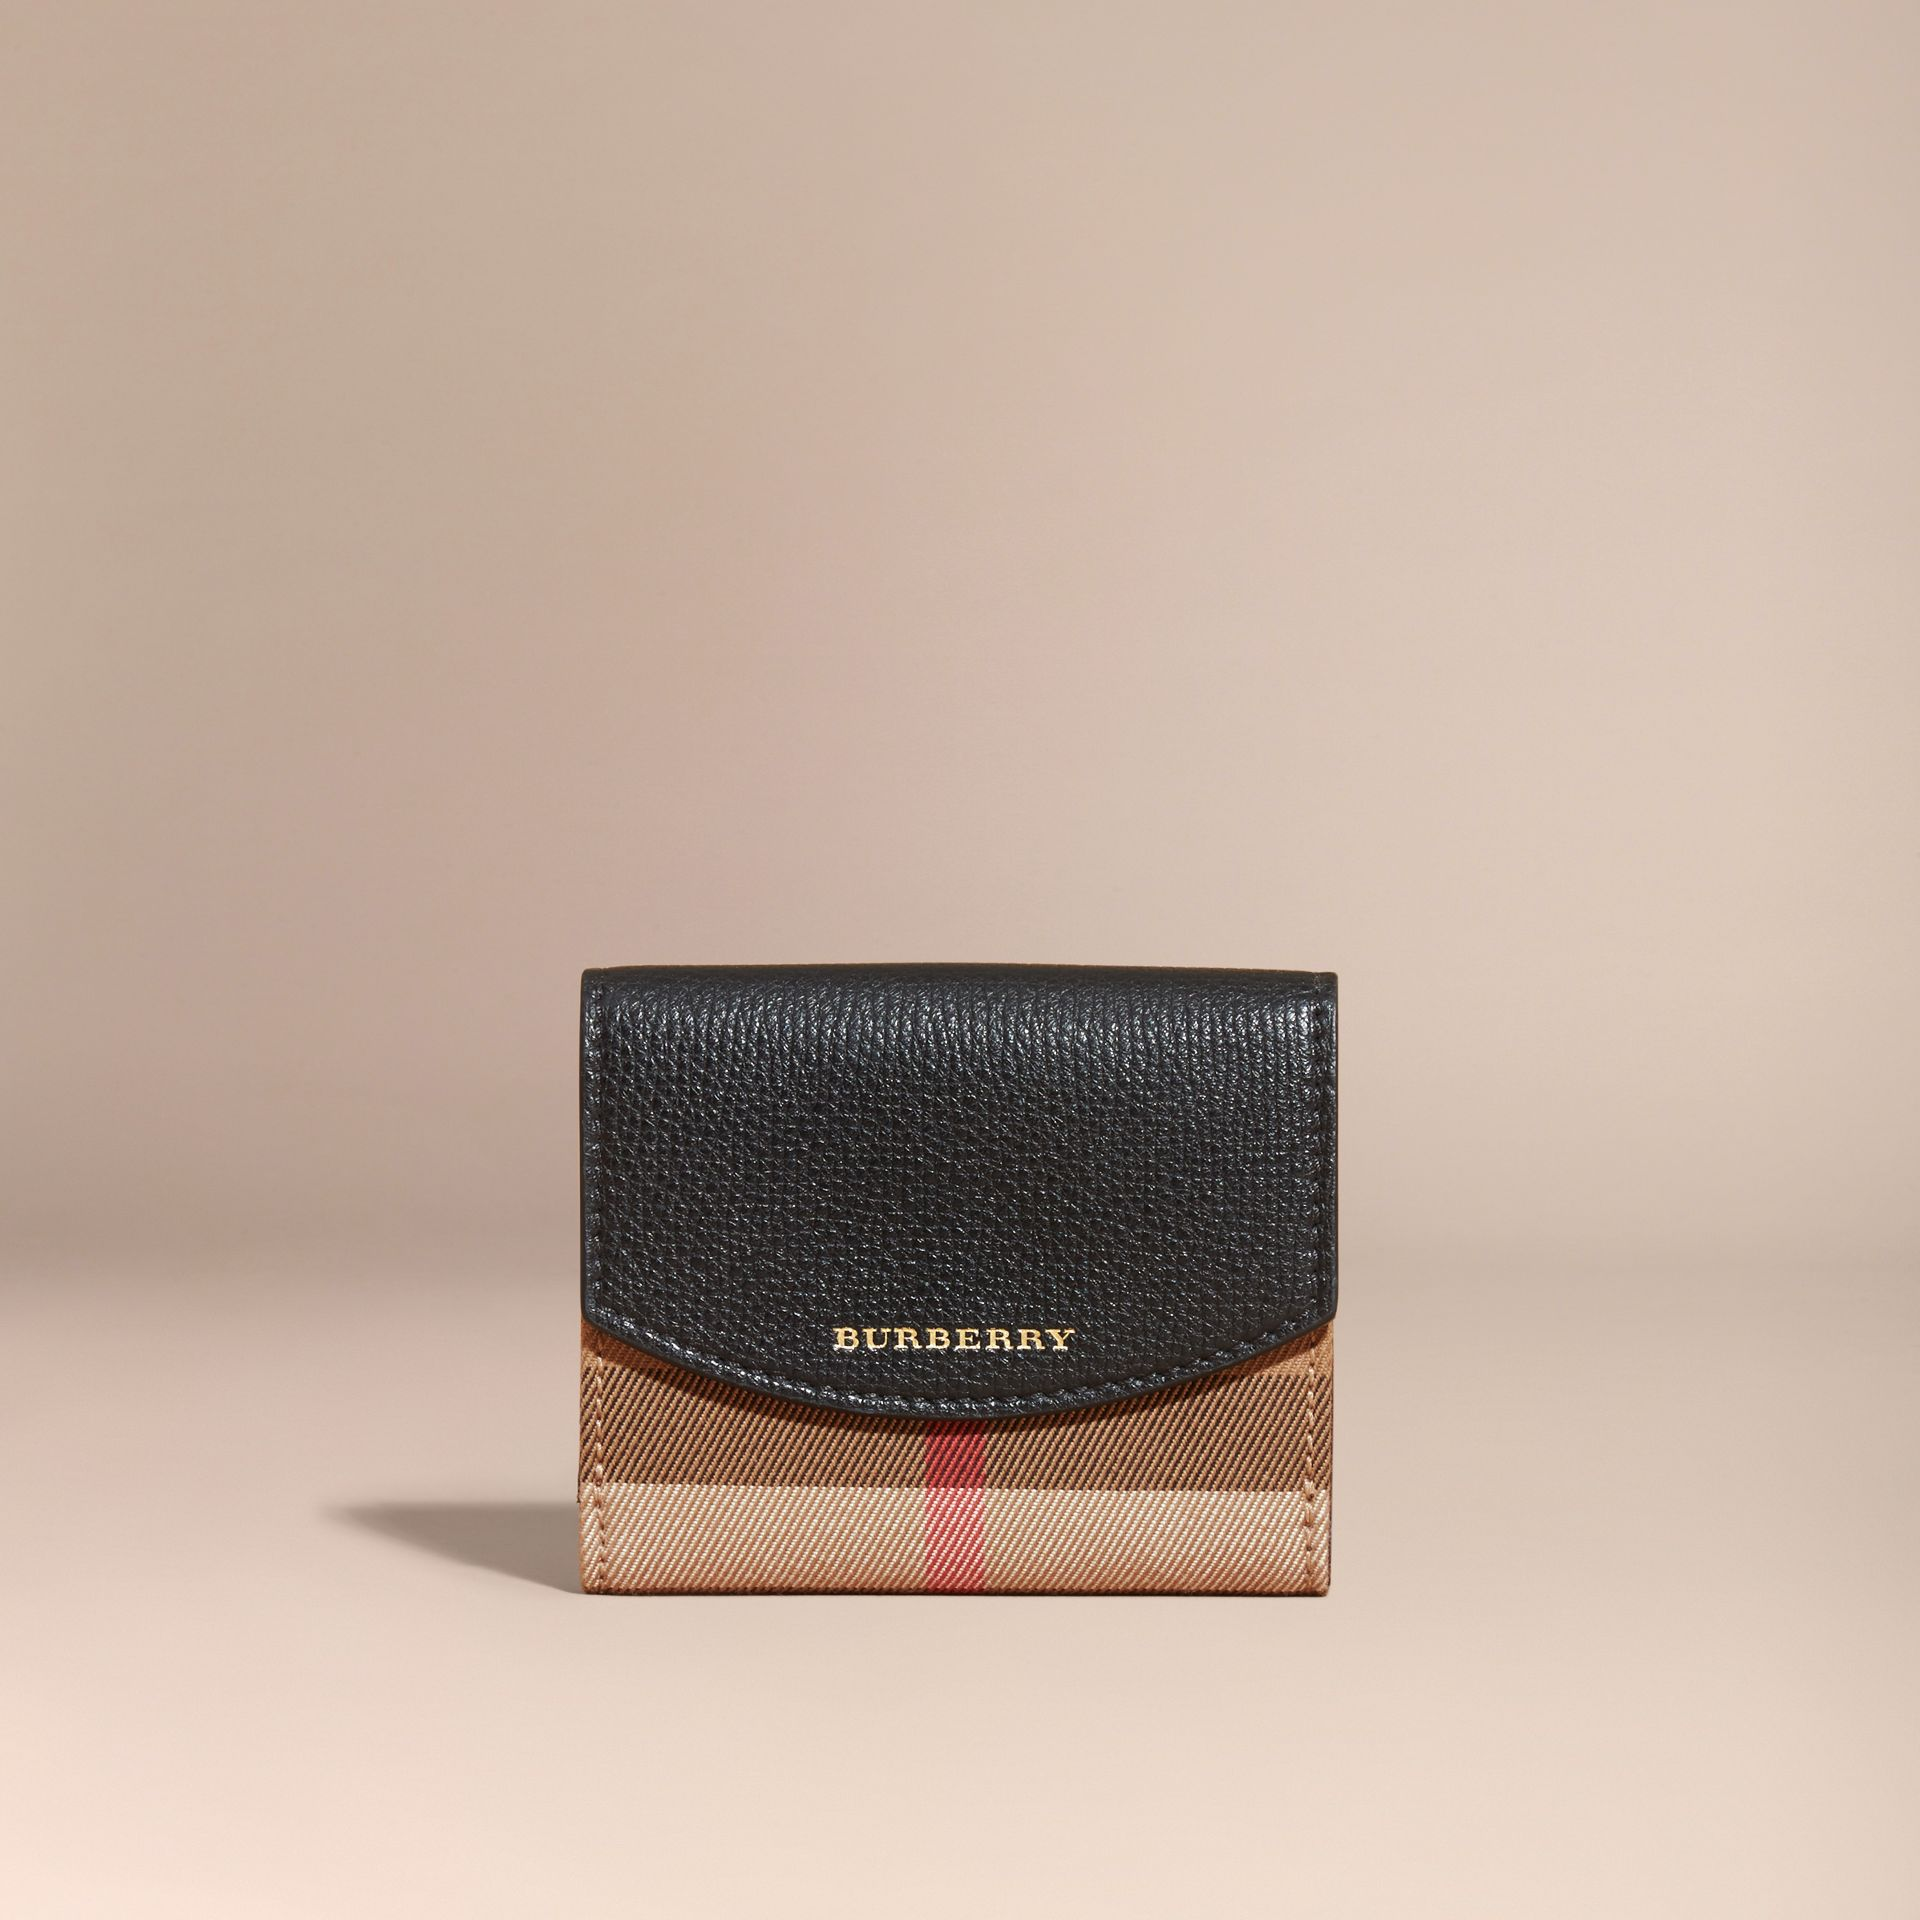 House Check and Leather Wallet in Black - Women | Burberry - gallery image 8